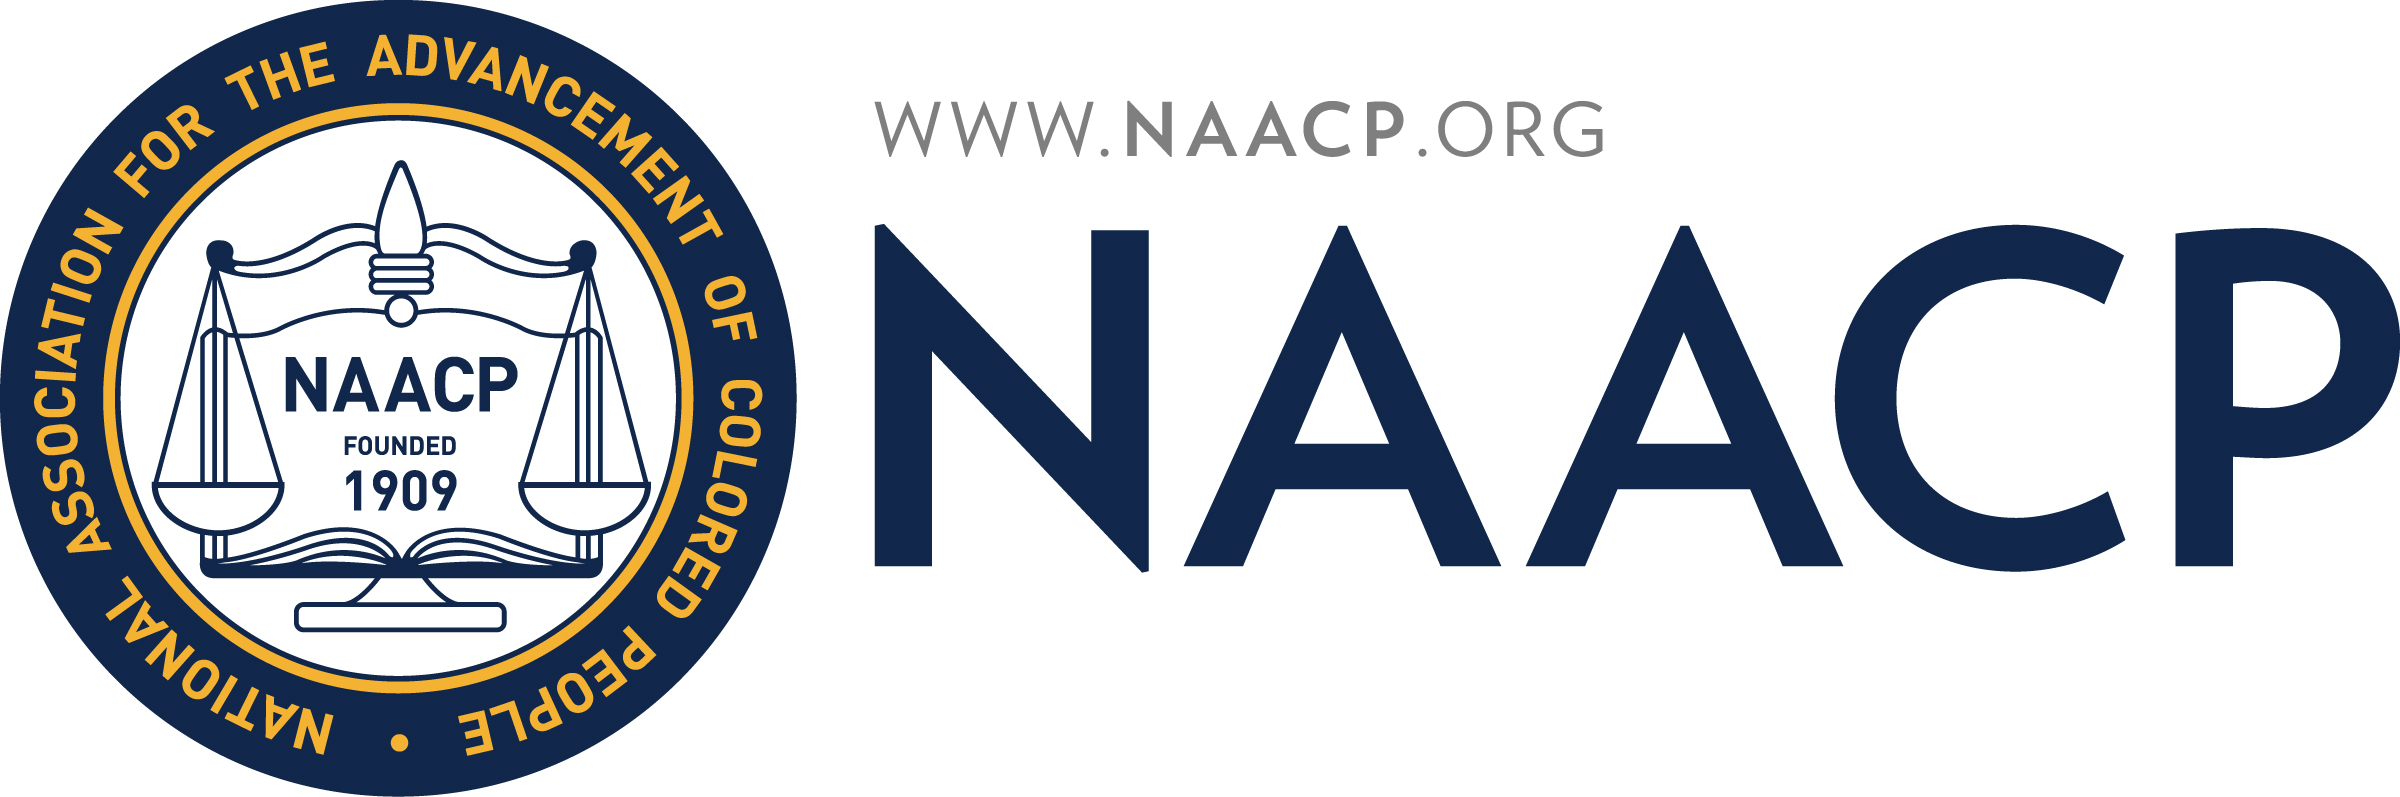 NAACP-Official-Logo1.jpg